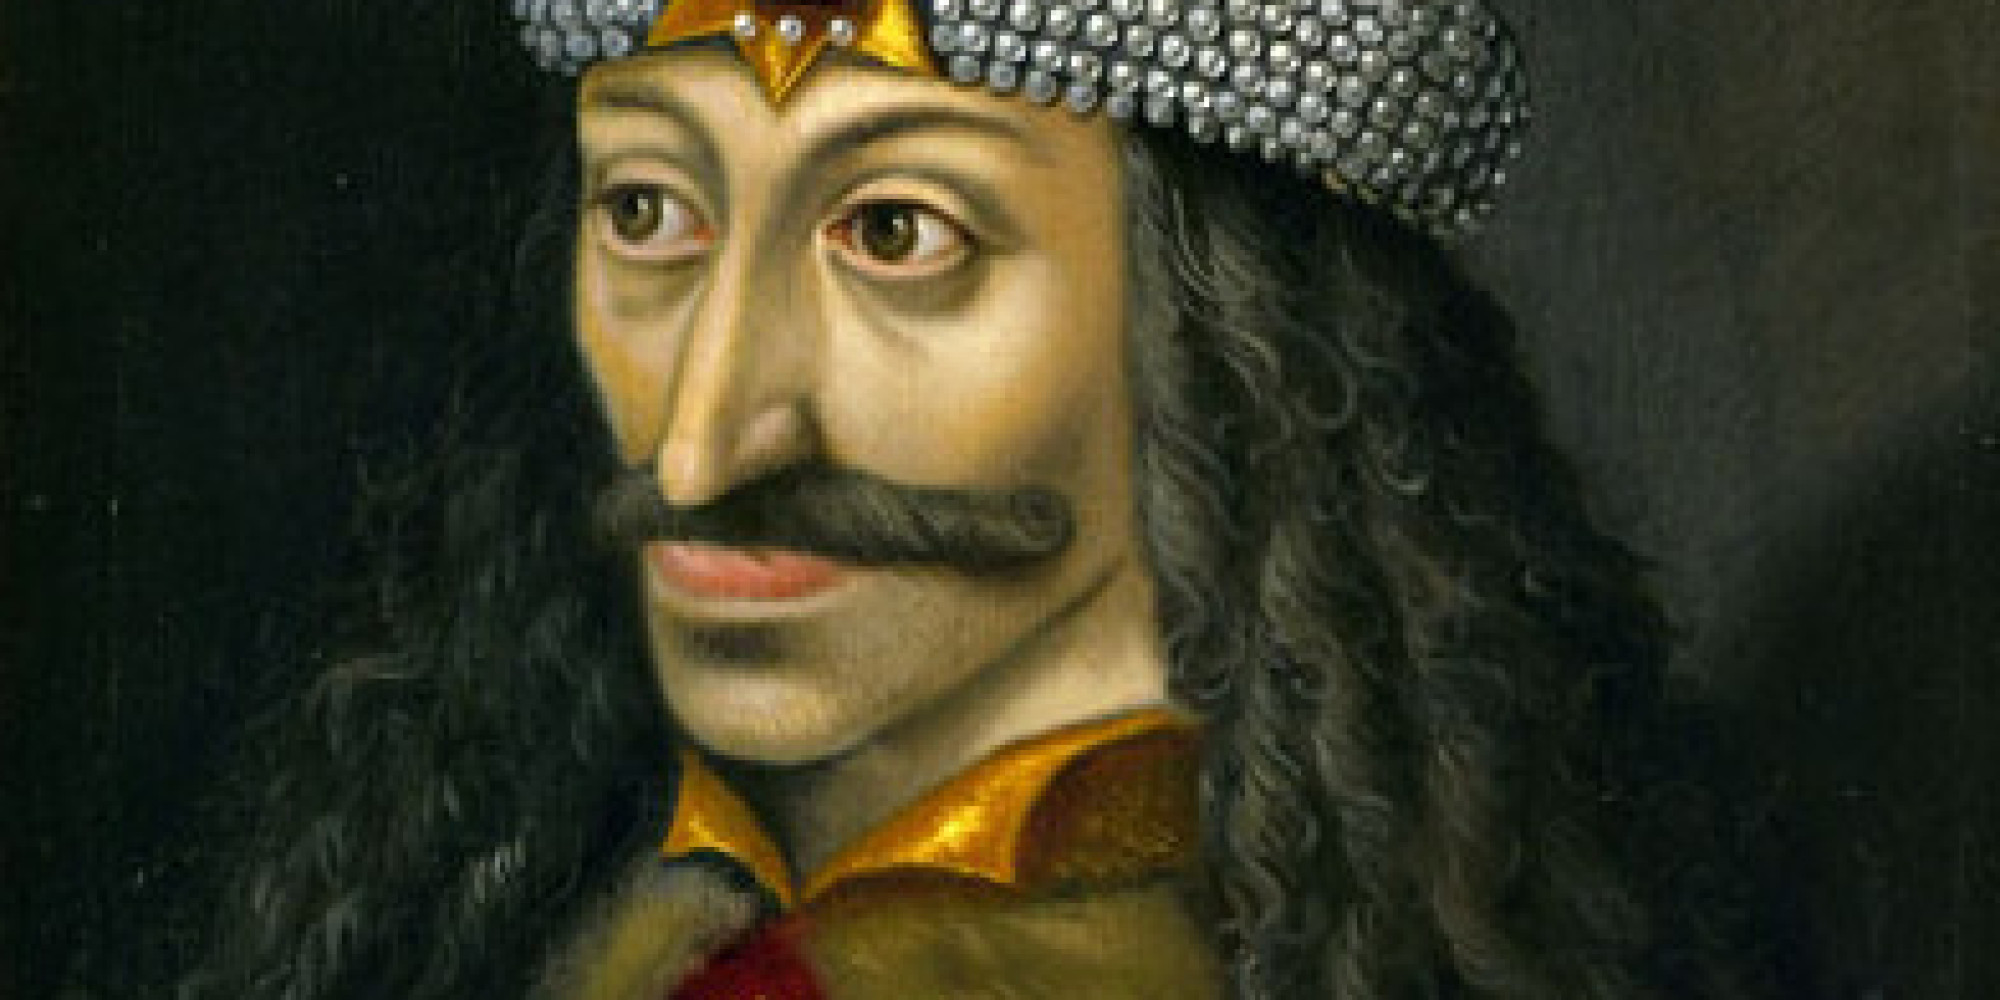 a story of vlad tepes dracula the ruler of romania Even researchers are trying to find out the truth about dracula all are trying to clear the mystery: was there or wasn't there a vampire in transylvania stoker's story is based on the life of vlad tepes/vlad the impaler (1431-1476), a ruler revered by romanians for standing up to the ottoman empire.